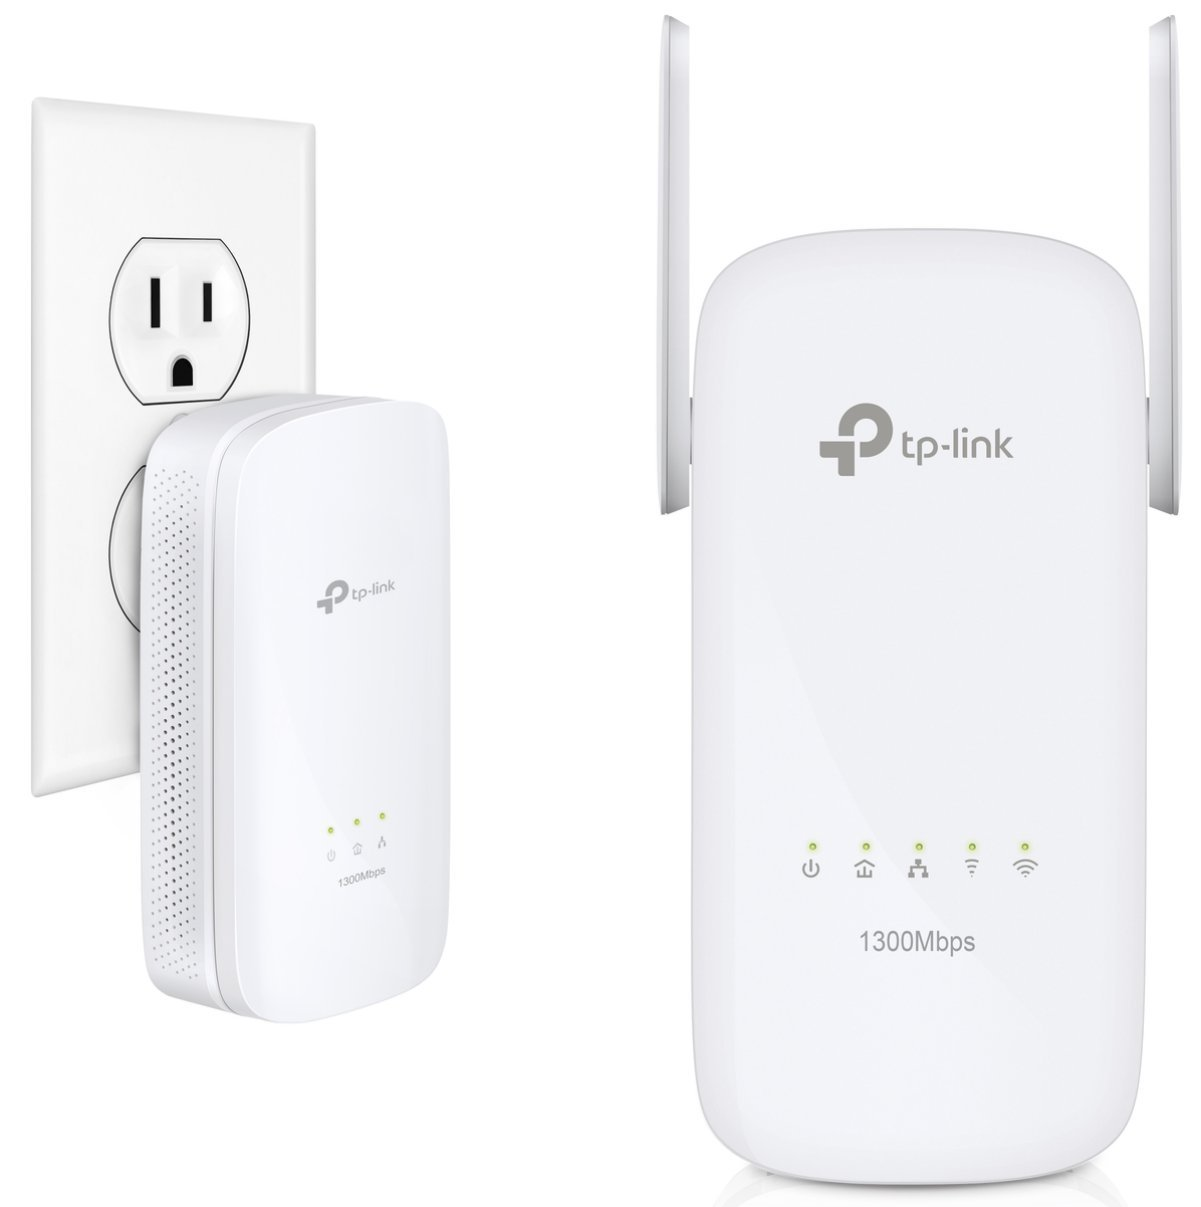 TP-Link AV1300 / AC1350 Gigabit Powerline AC Wi-Fi Kit | HomePlug AV2 Technology w/ Beamforming | Plug, Pair, and Play (TL-WPA8630 KIT V2)